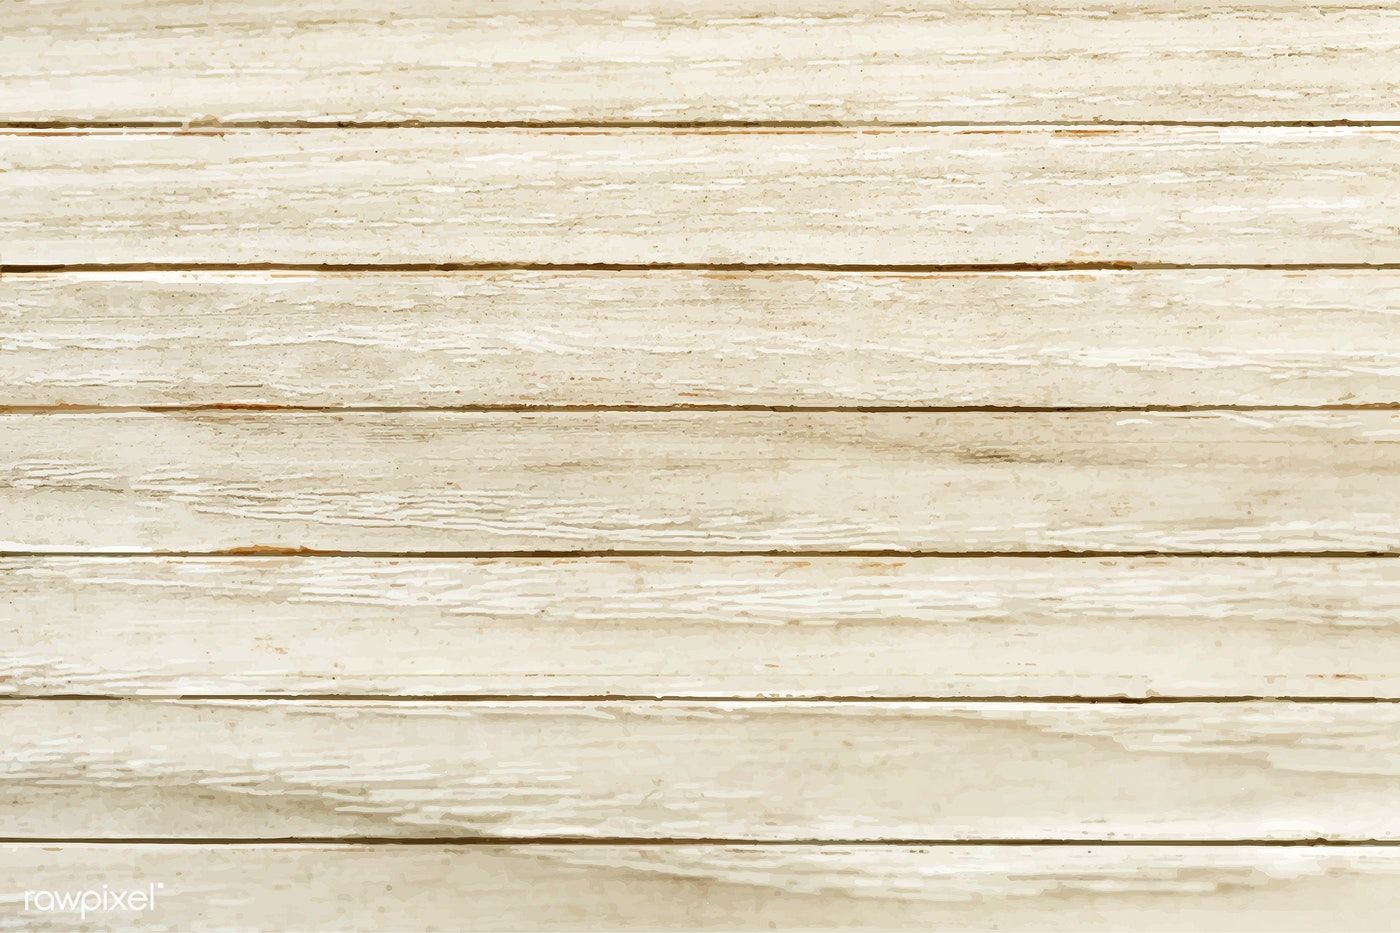 Light wood texture flooring background free image by